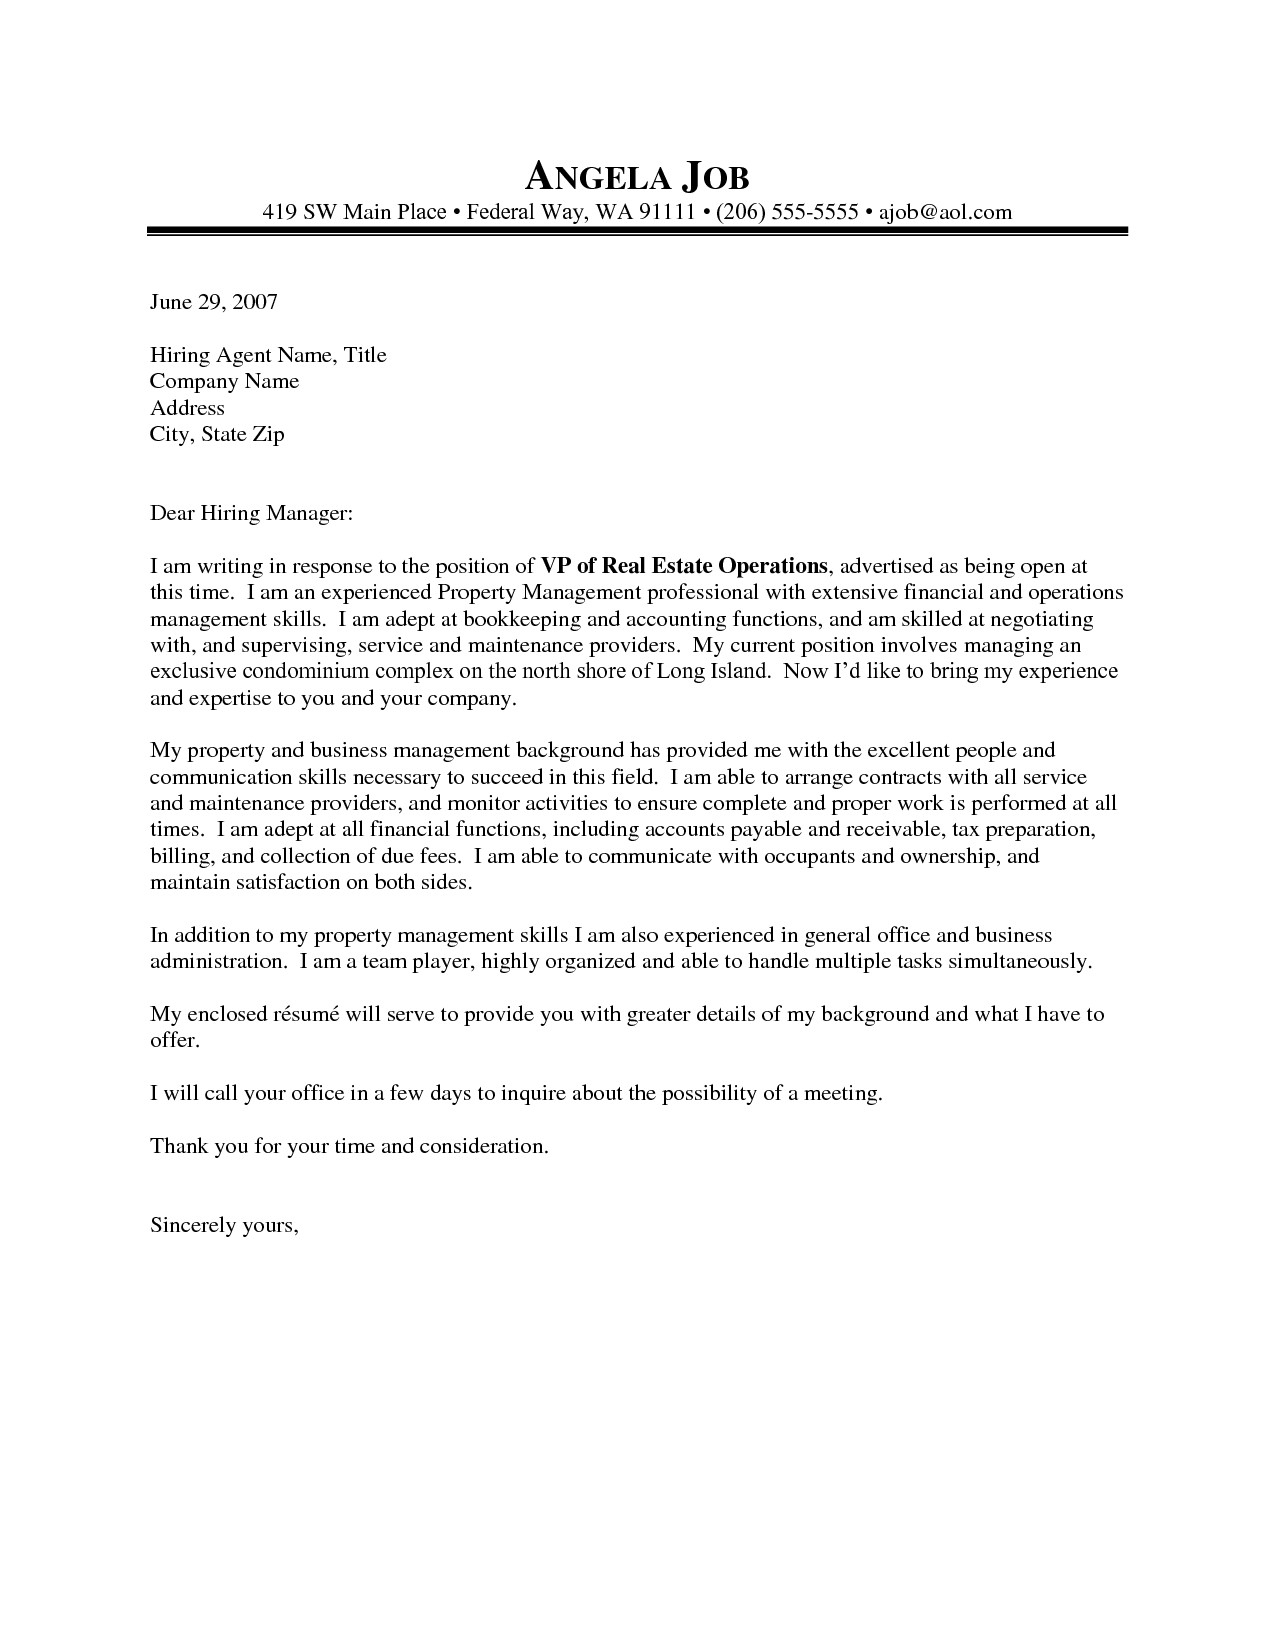 Property Management Cover Letter Template - Best Sample Resume Cover Letter Property Management